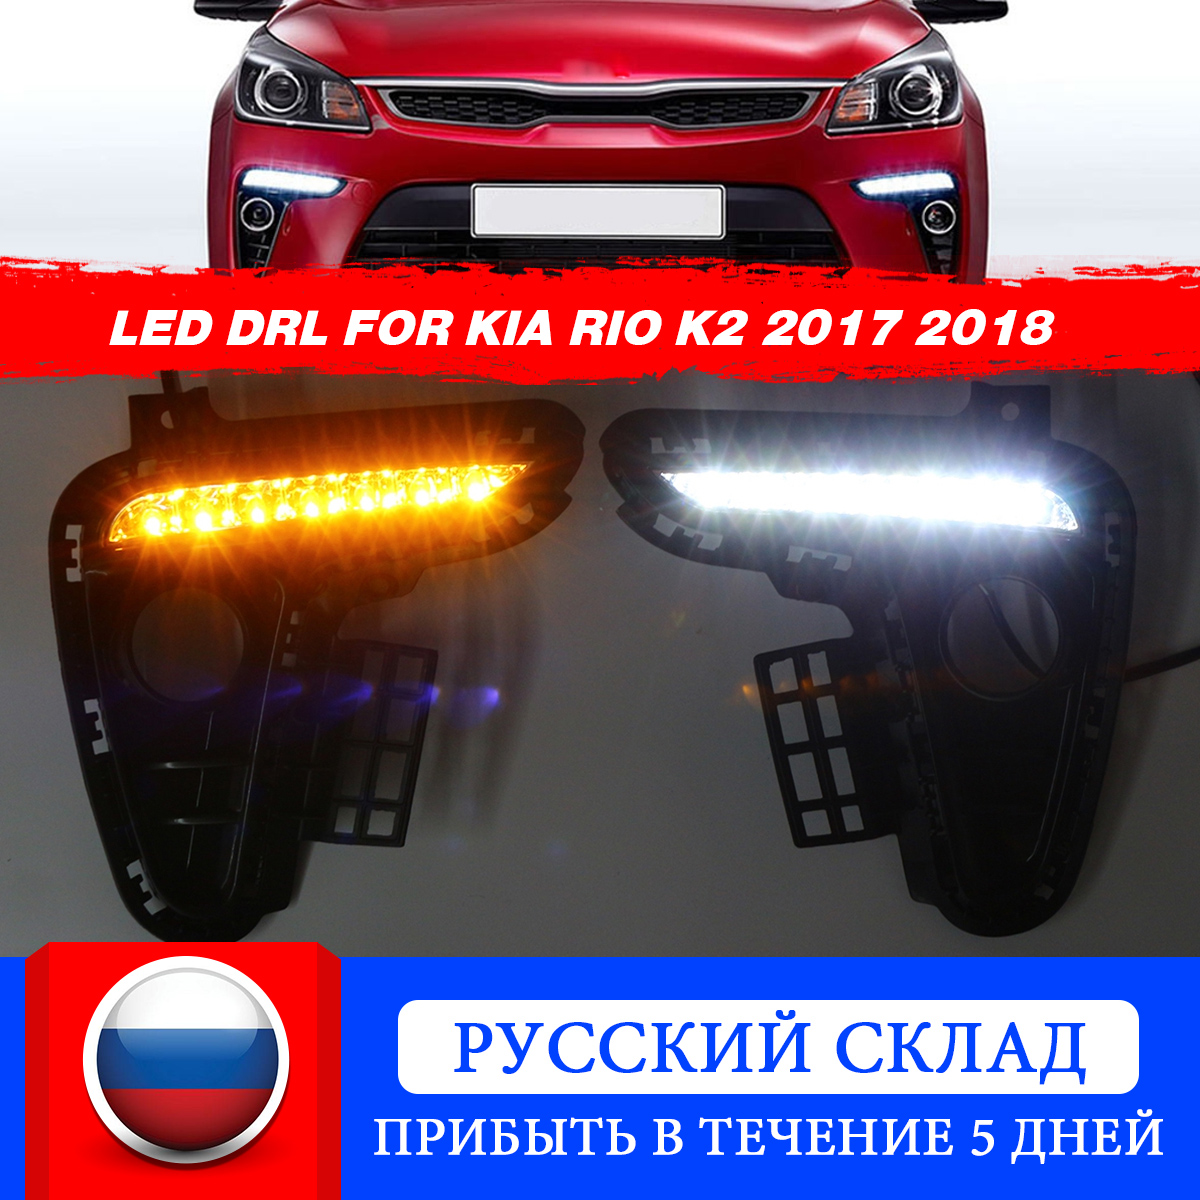 2Pcs 12v Car Led Bumper DRL For Kia Rio 2017 2018 Turn Signal Wire Daytime Running Light Fog Headlight Driving Lamp Waterproof2Pcs 12v Car Led Bumper DRL For Kia Rio 2017 2018 Turn Signal Wire Daytime Running Light Fog Headlight Driving Lamp Waterproof